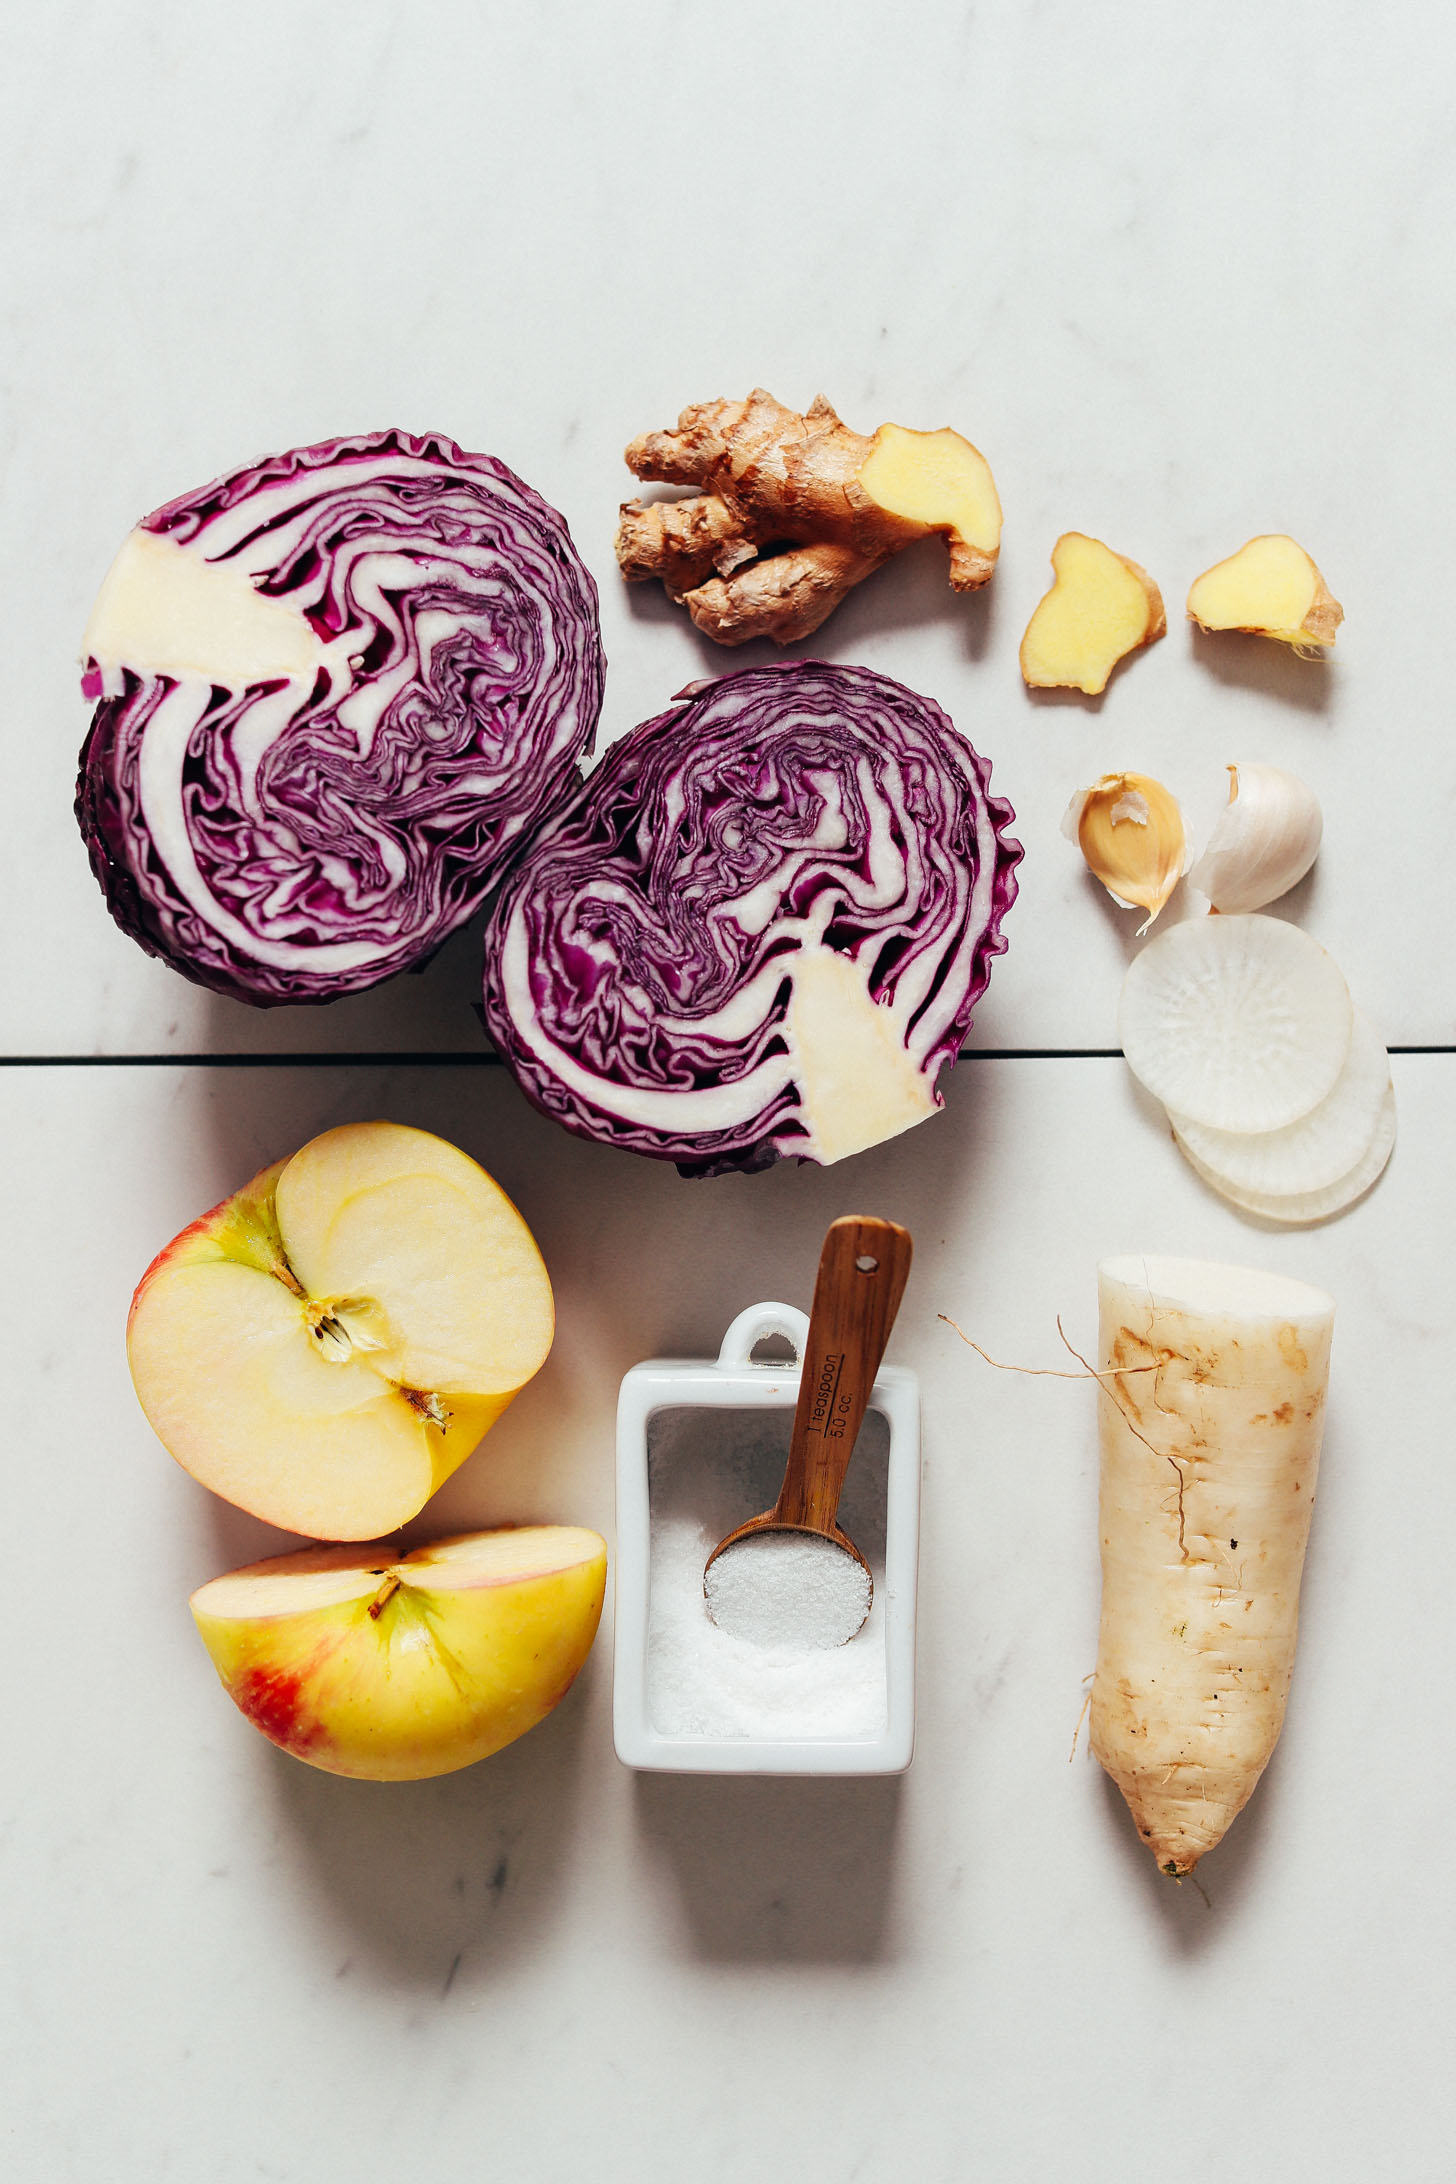 Daikon, red cabbage, apple, salt, ginger, and garlic for making our Apple-Cabbage Sauerkraut recipe